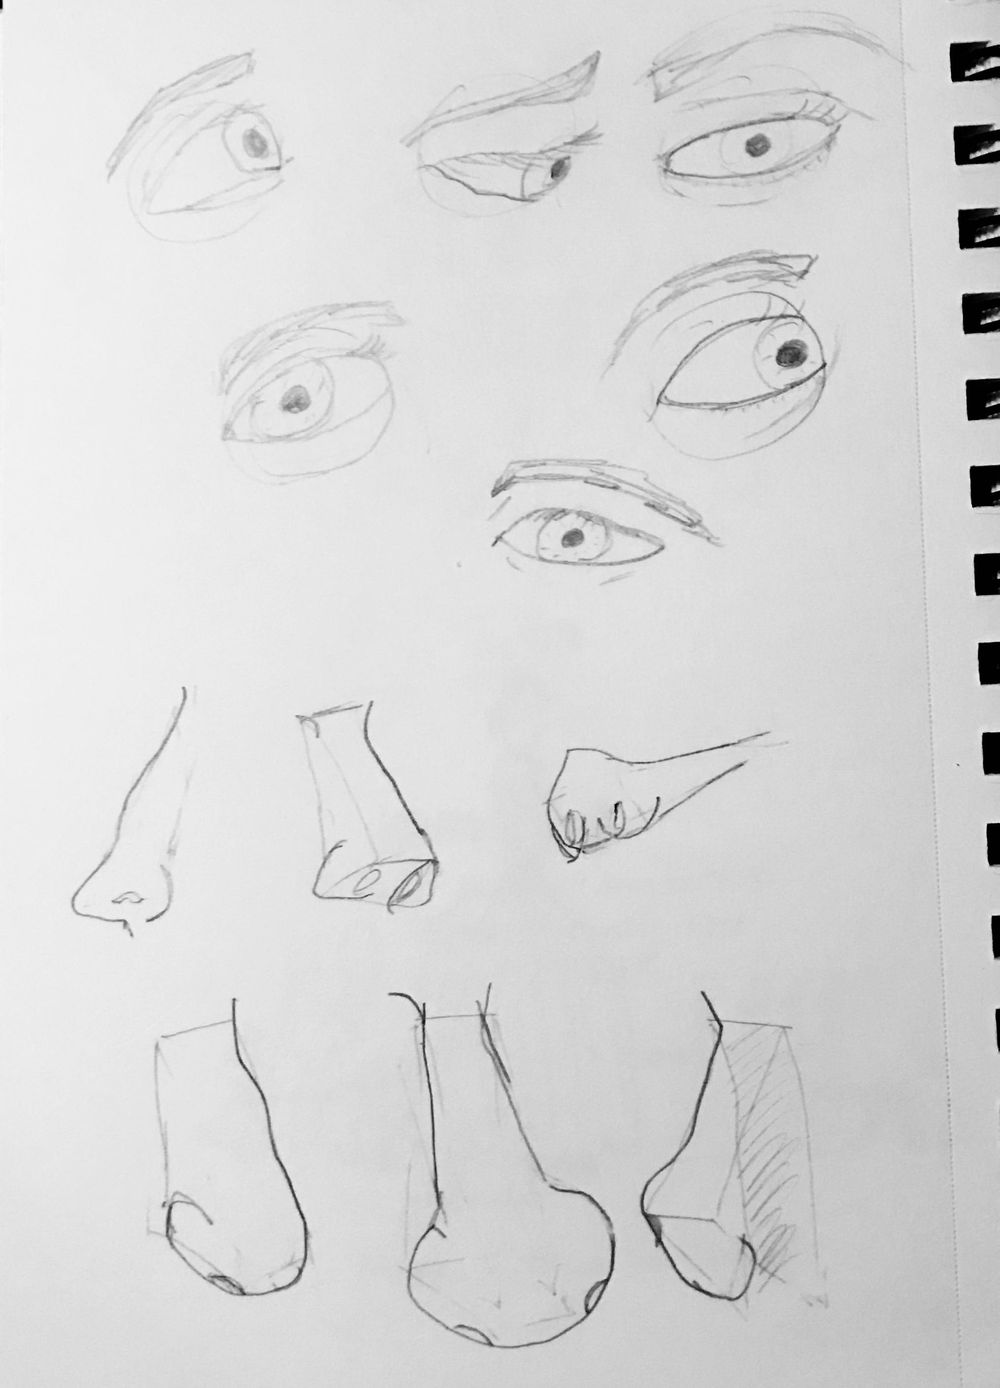 Sketches - image 1 - student project